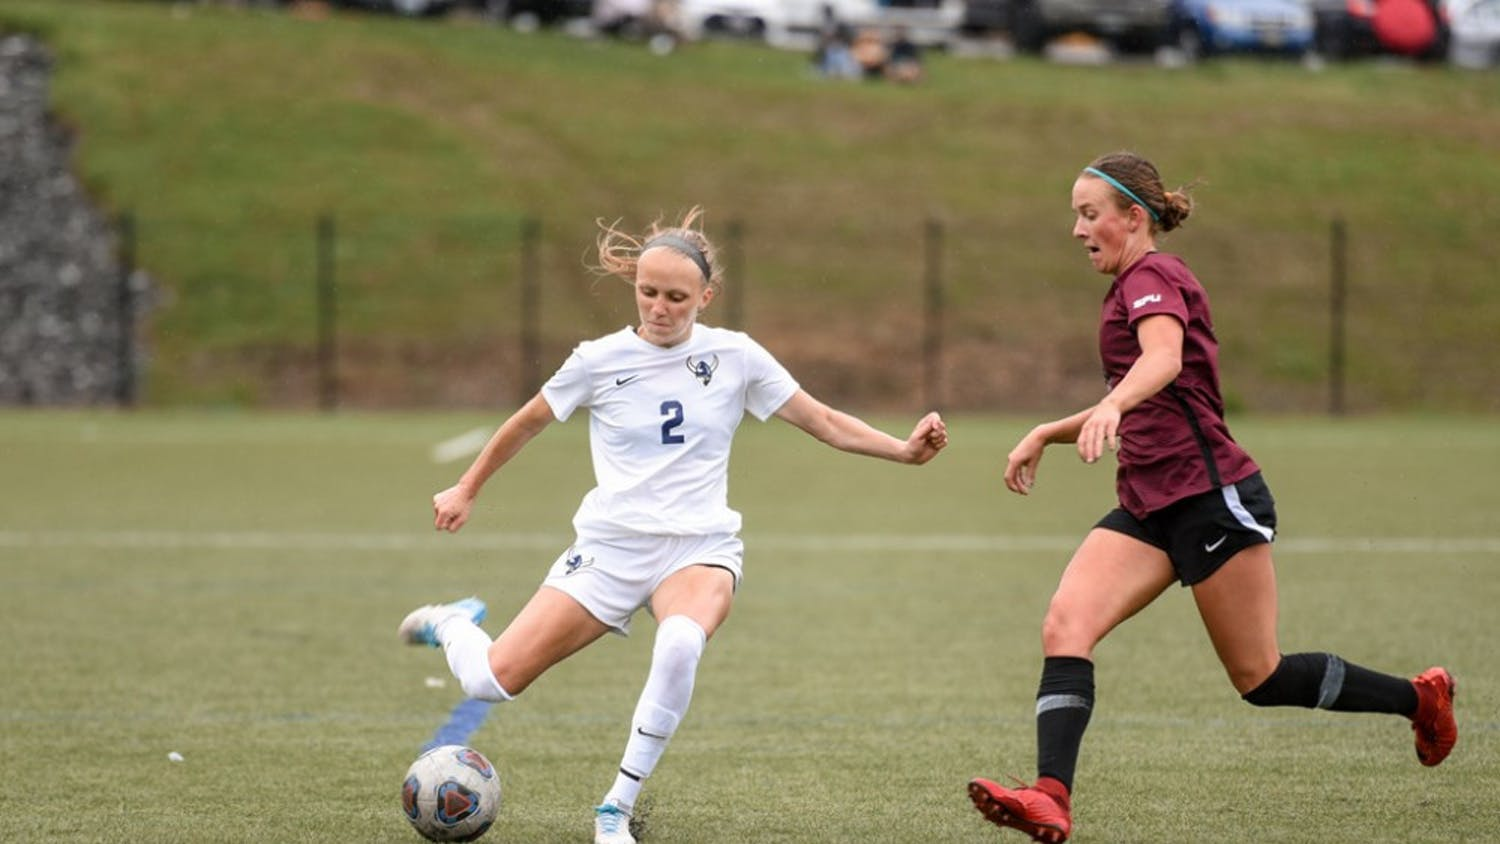 Senior Viking midfielder Darby Doyle in a match against Seattle Pacific University on April 24, 2021. The Vikings suffered their first defeat of the season at Seattle Pacific. // Photo Courtesy of Christian Serwold